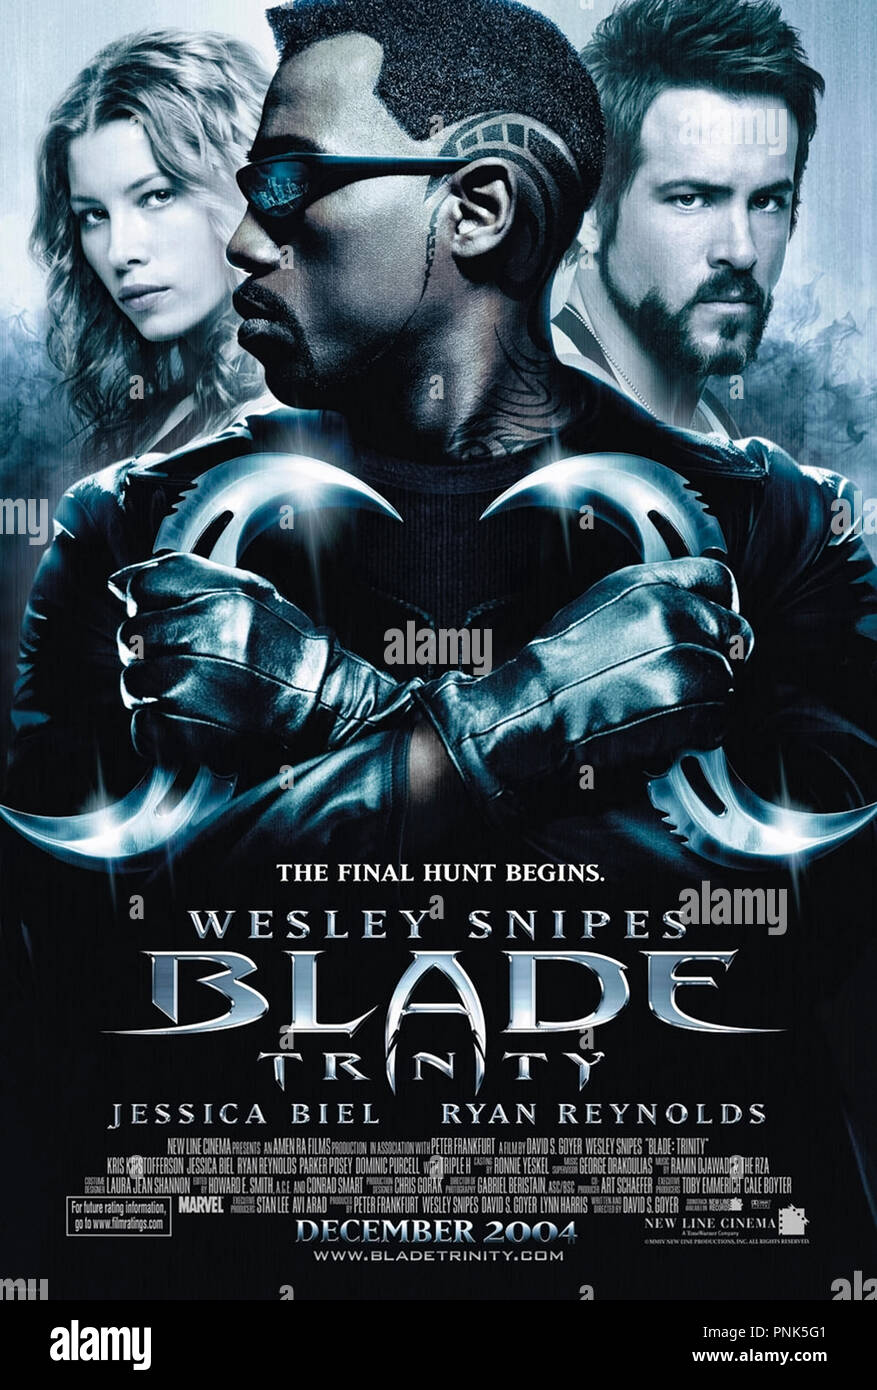 Blade: Trinity (2004) directed by David S. Goyer and starring Wesley Snipes, Kris Kristofferson, Parker Posey and Ryan Reynolds. Blade and the Nightstalkers take on Dracula. - Stock Image